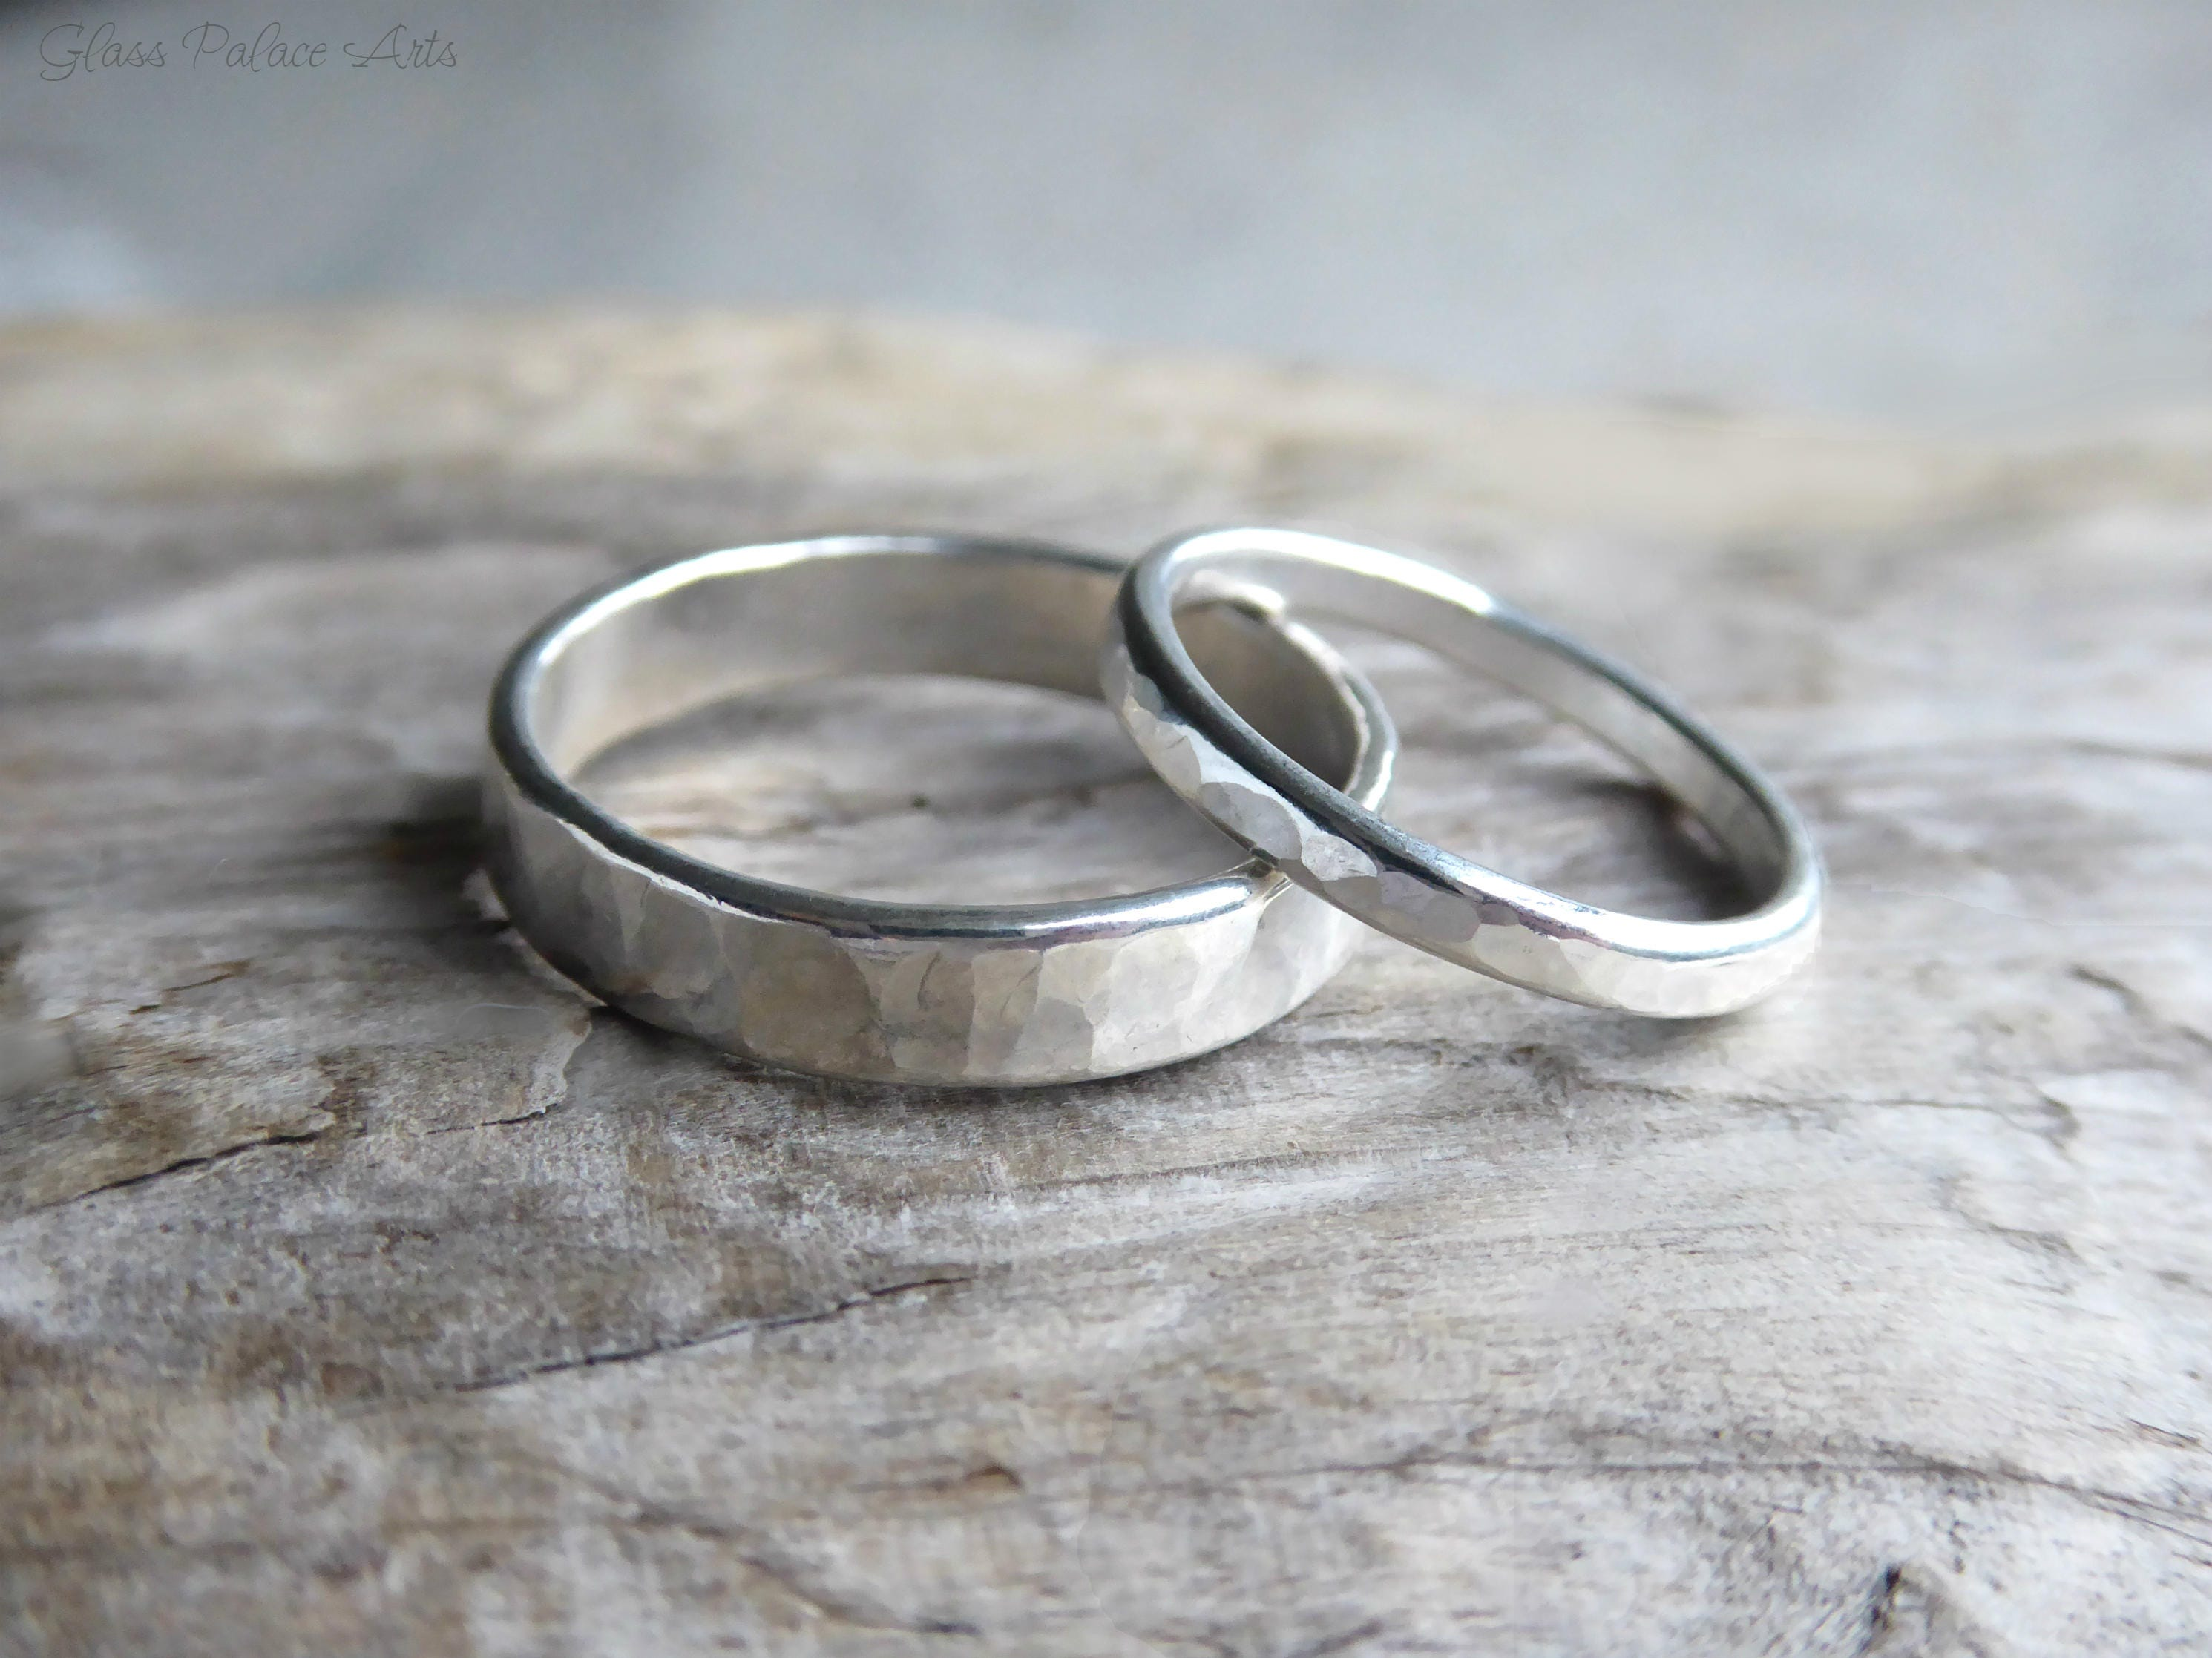 pinterest wedding m google finitions taux jewellery mobius recherche rings martel gold pin et or